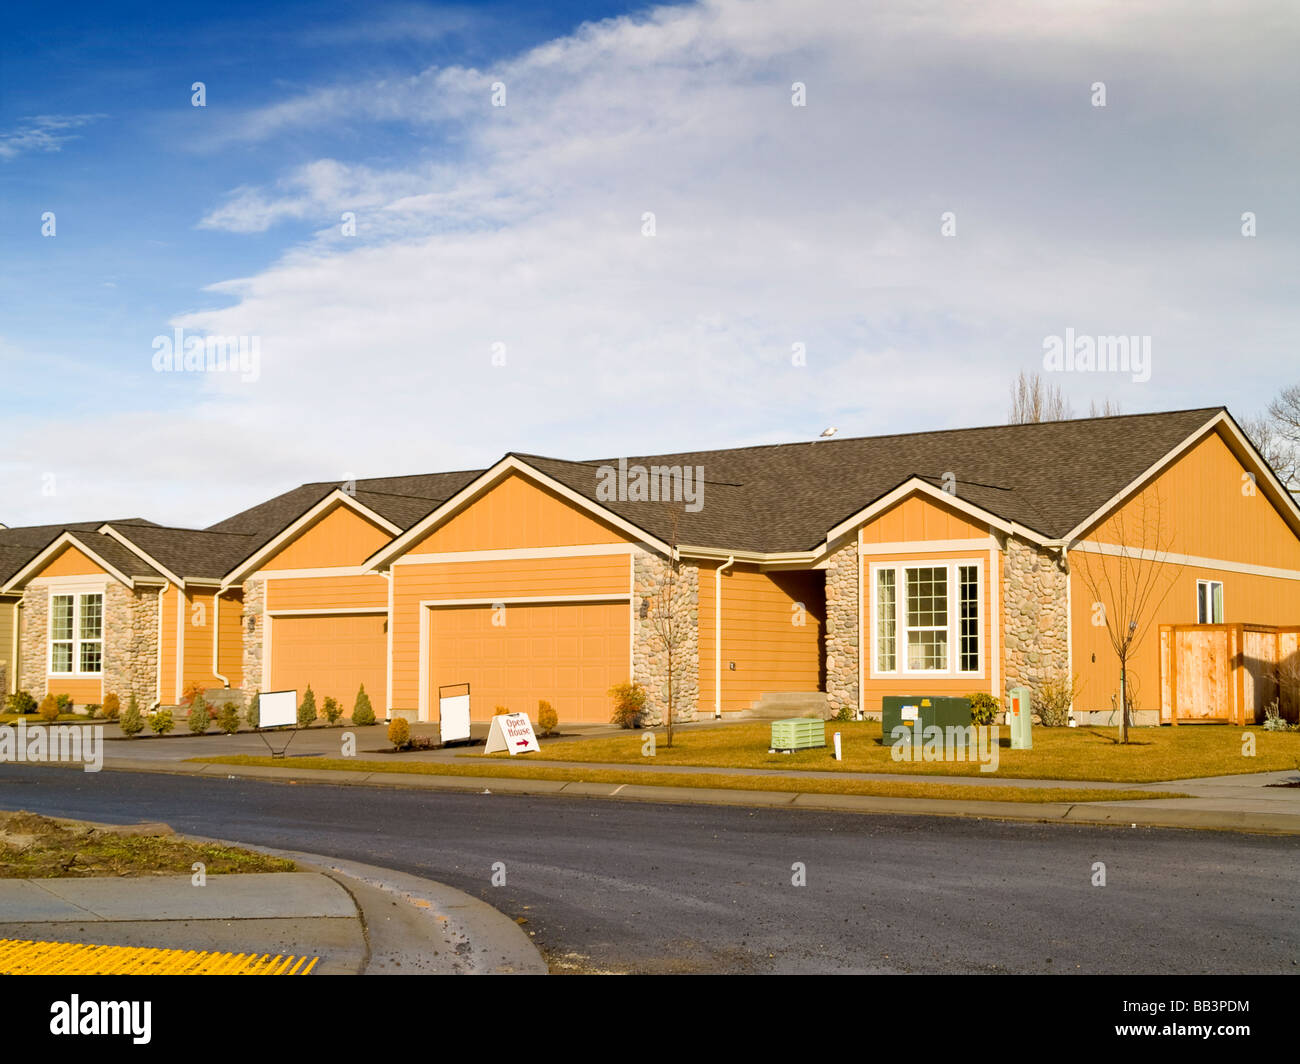 A new house for sale on a warm sunny day - Stock Image